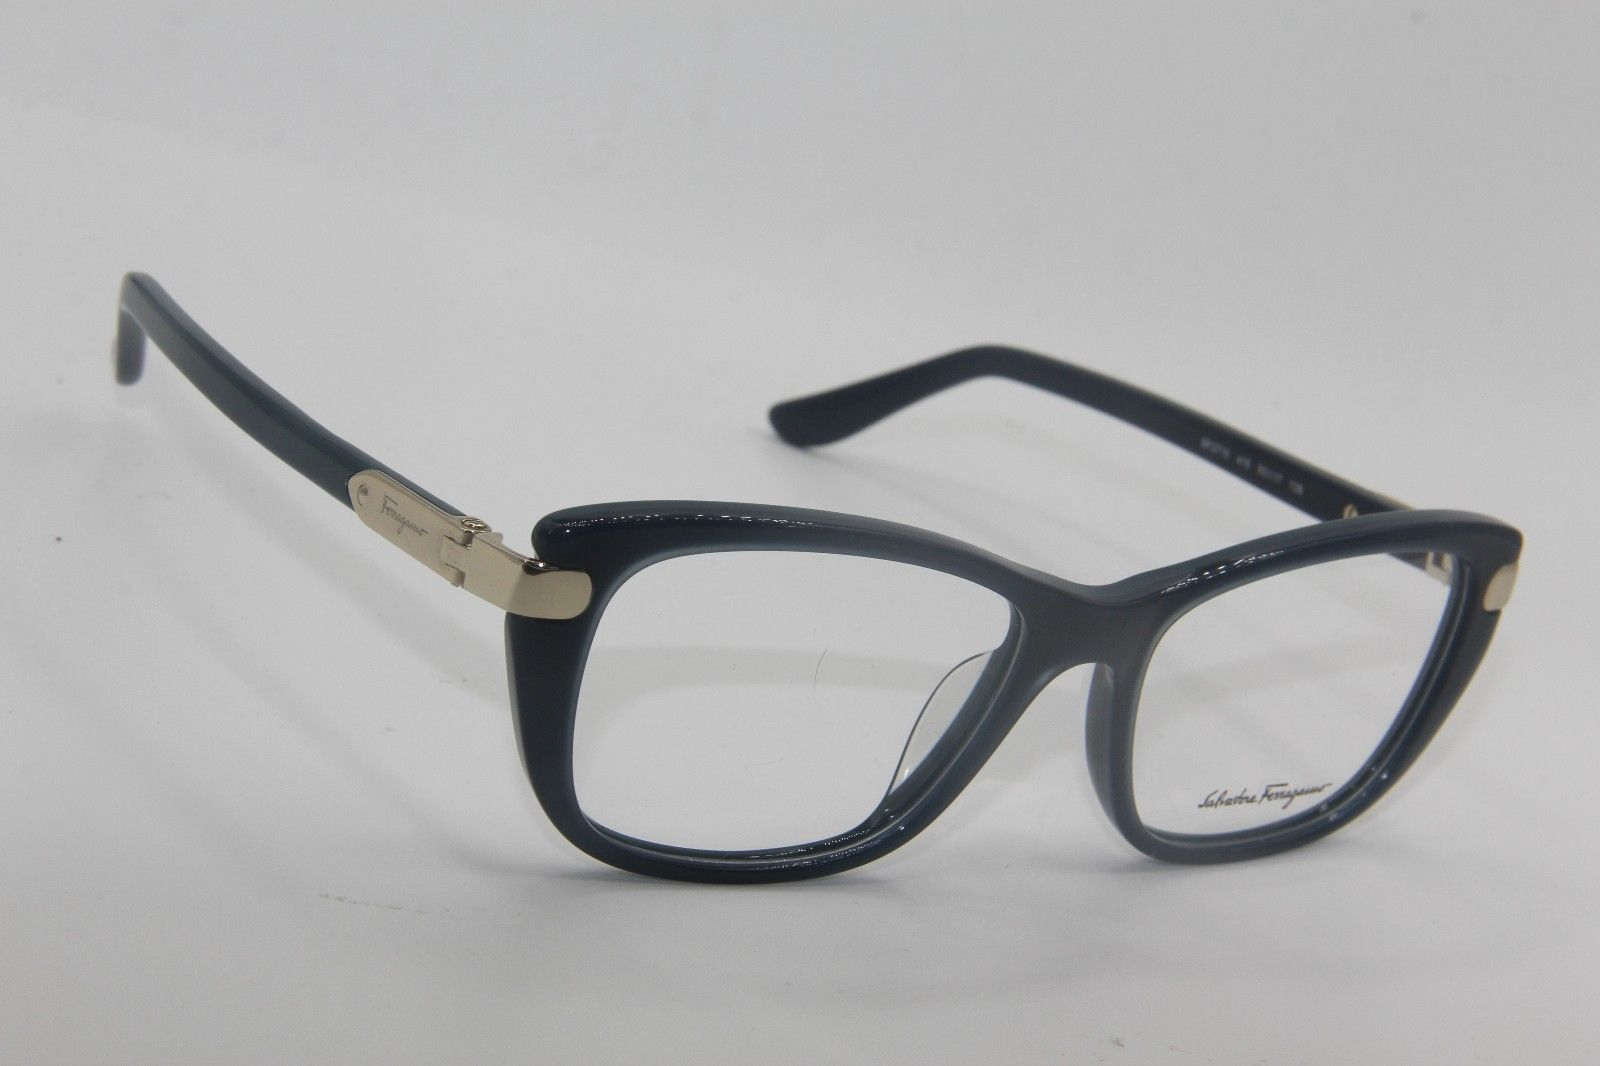 1c3ad8a186 NEW SALVATORE FERRAGAMO SF 2719 416 BLUE EYEGLASSES AUTHENTIC RX SF2719  53-17